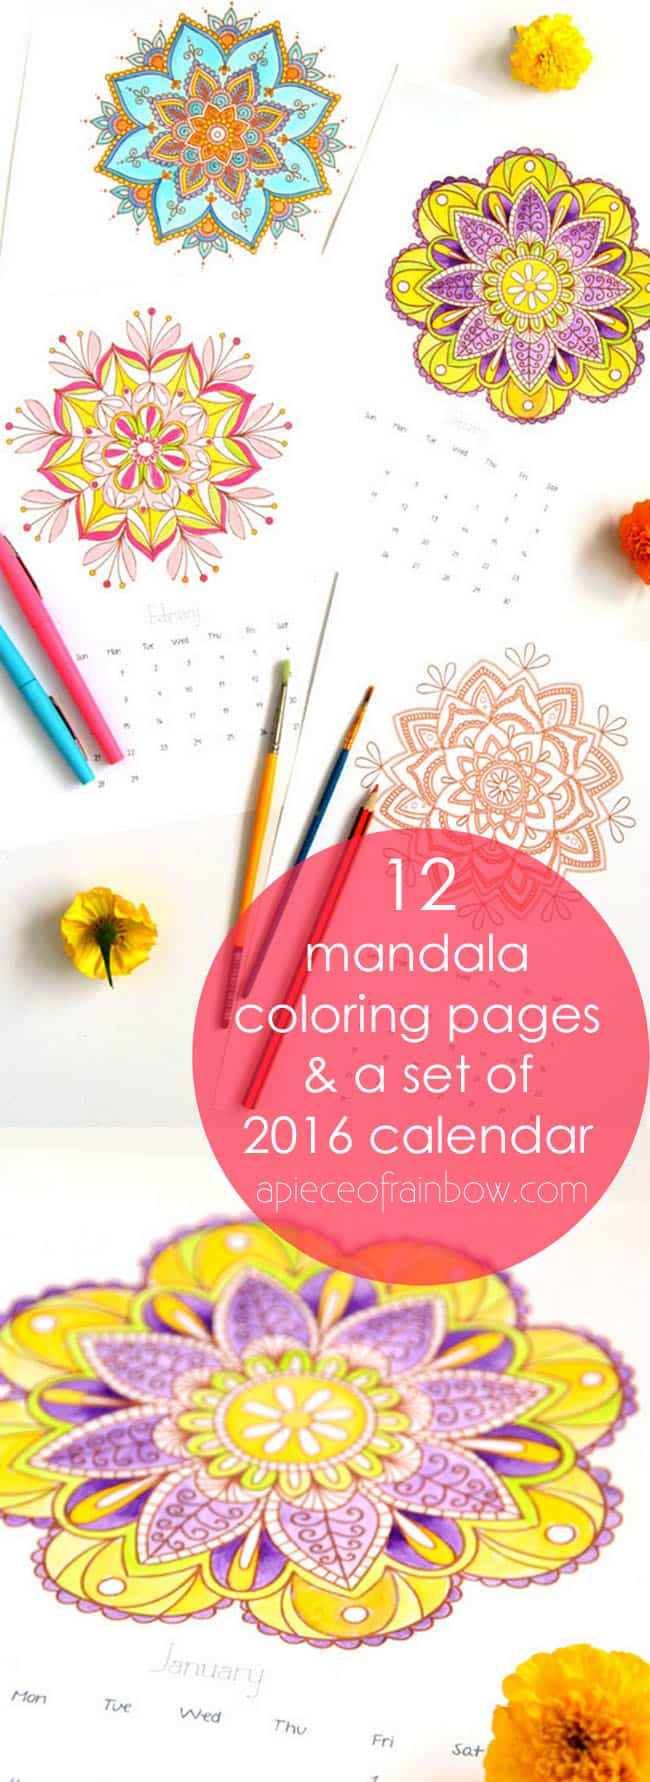 mandala coloring pages 2016 calendar a piece of rainbow